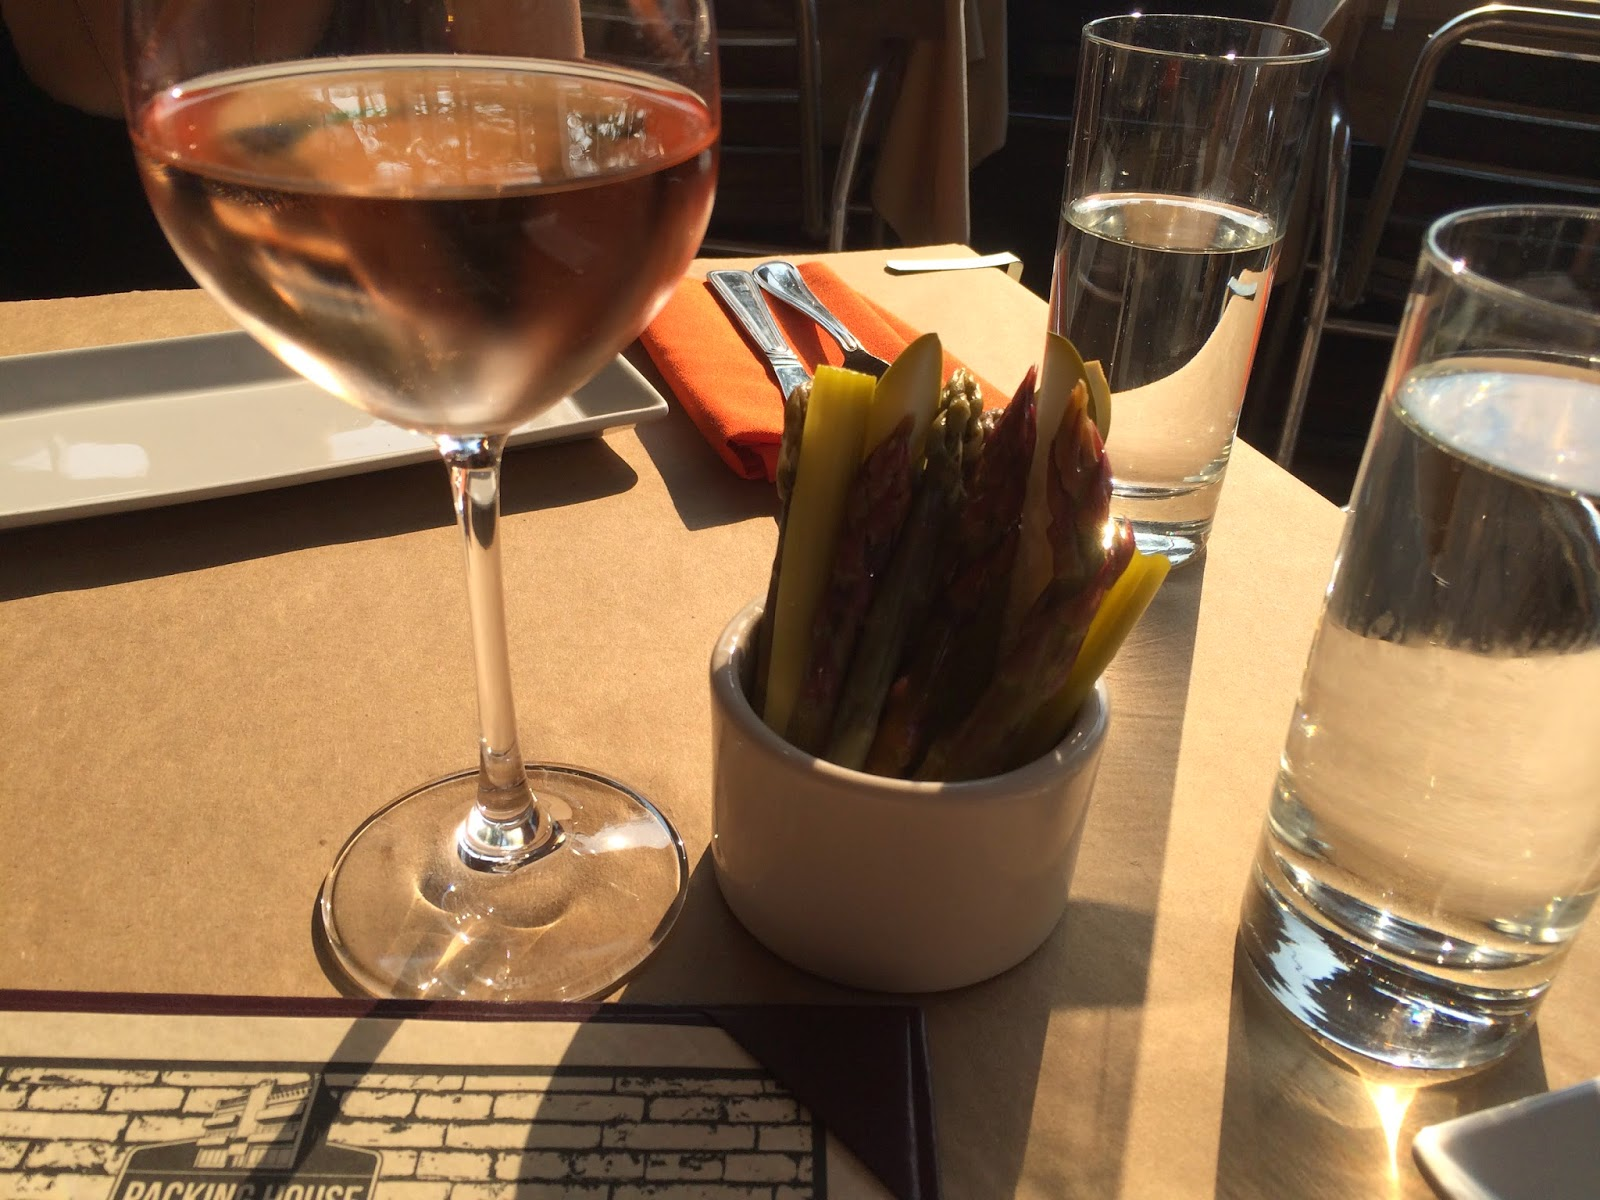 Packing House - Chicago - Rose Wine - Homemade Pickles